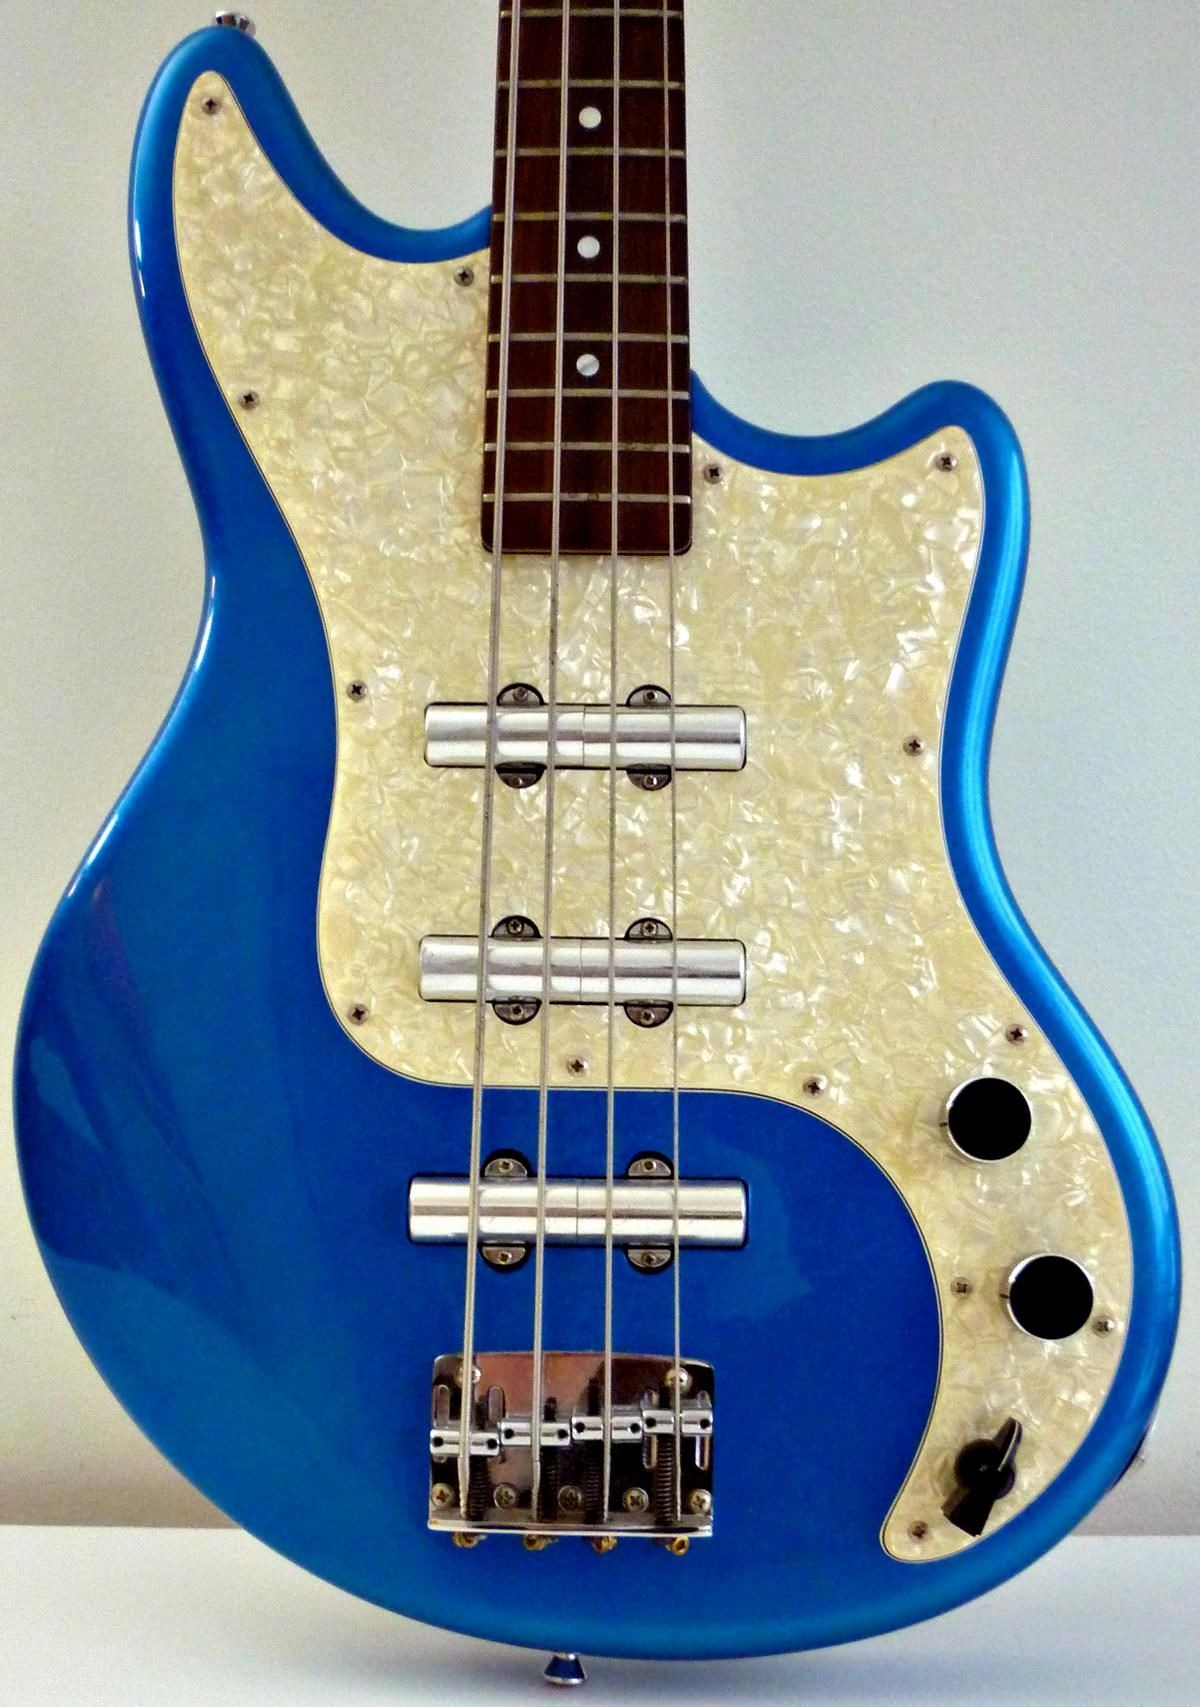 Schecter Hellcat Bass In Blue Sparkle Late 90s The Chickenhead Lipstick Guitar Pickup Wiring Diagrams Knob As A Selector And Unusual Pickups Are Retrotastic